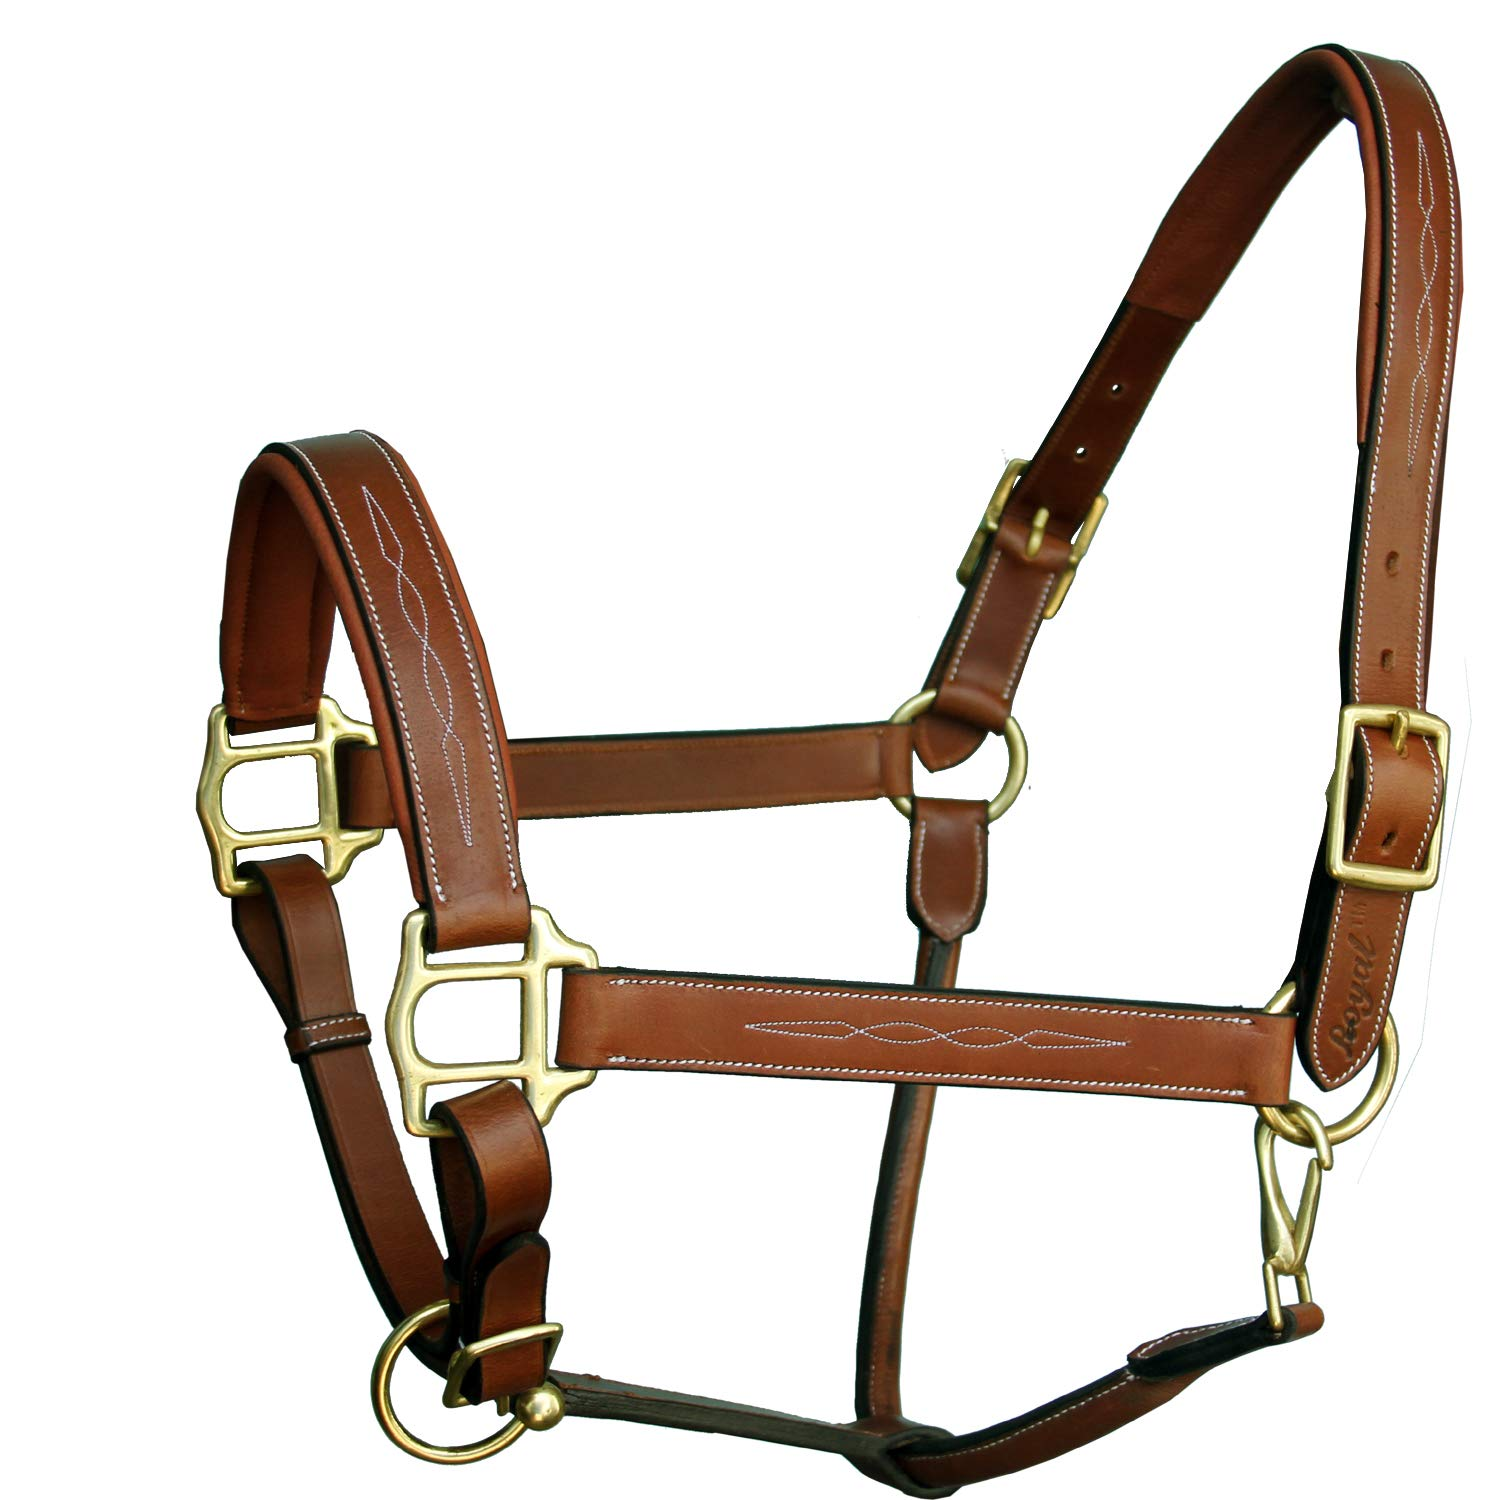 Conker (Tan Brown) Medium (Cob) Conker (Tan Brown) Medium (Cob) Exion Six Fancy Padded Halter and Brass Buckles   Equestrian Show Jumping Padded Halter   English Horse Riding Premium Tack   Conker   Cob